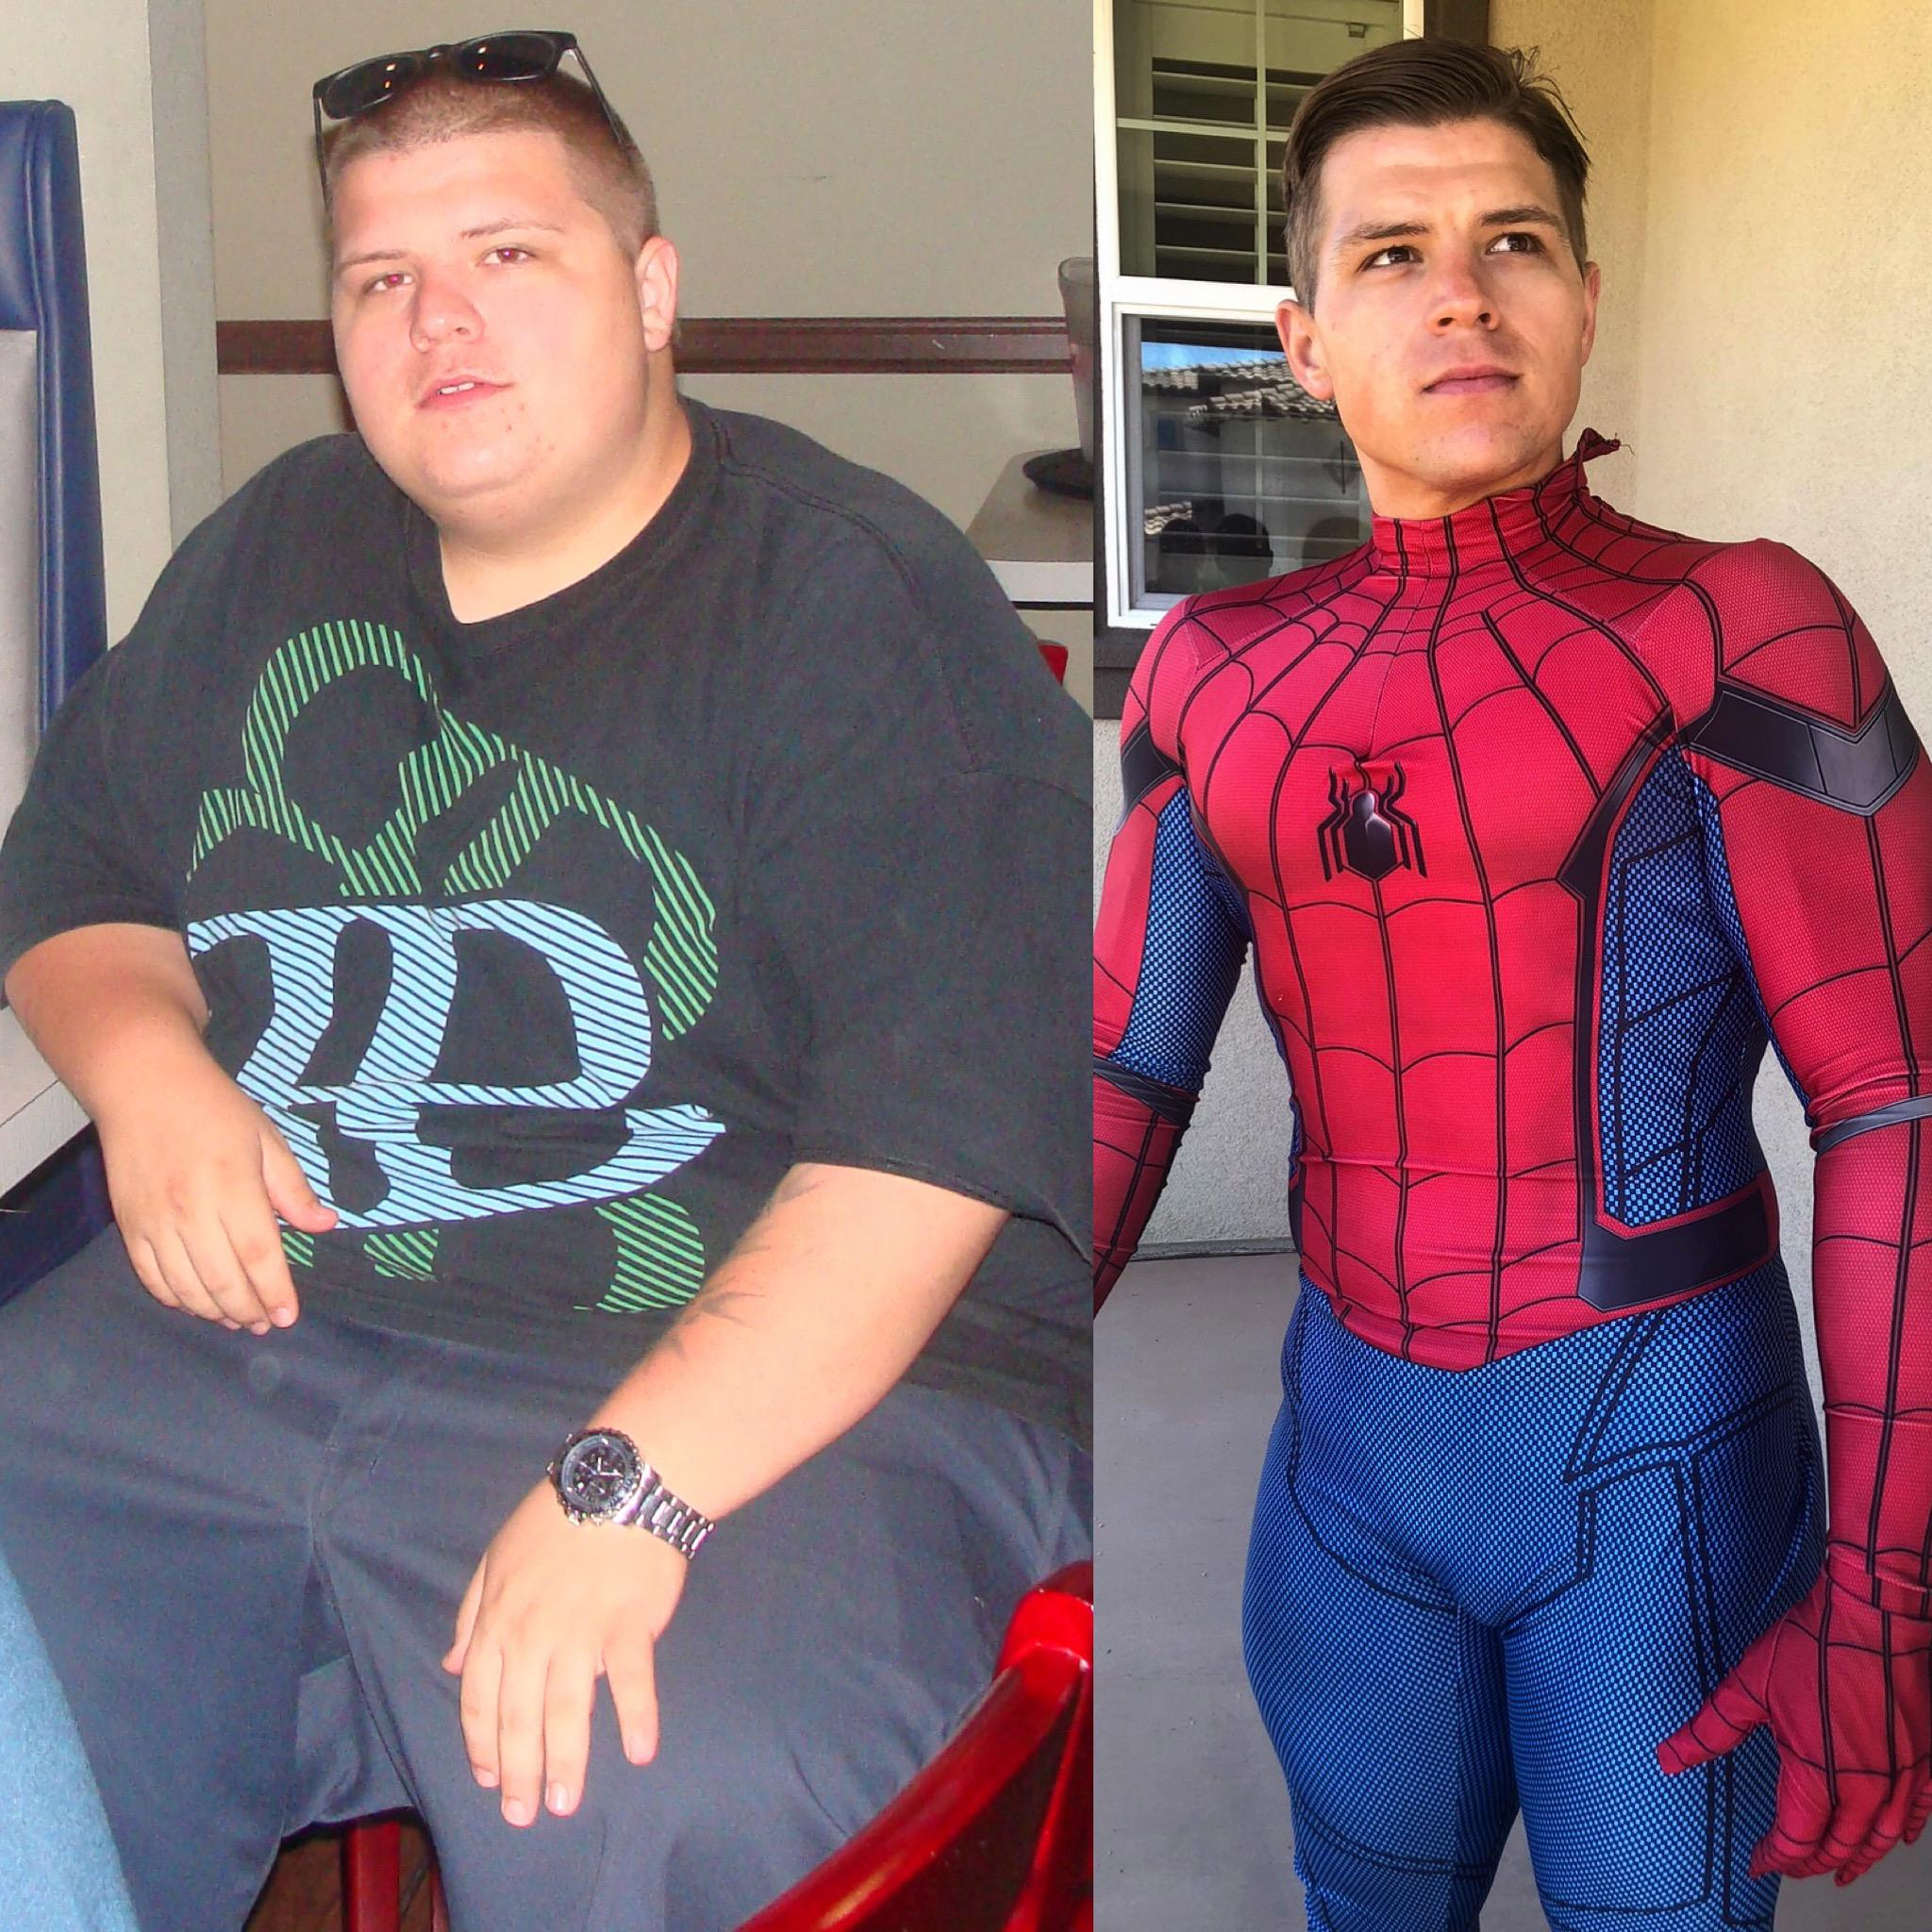 5 foot 8 Male Before and After 160 lbs Weight Loss 360 lbs to 200 lbs